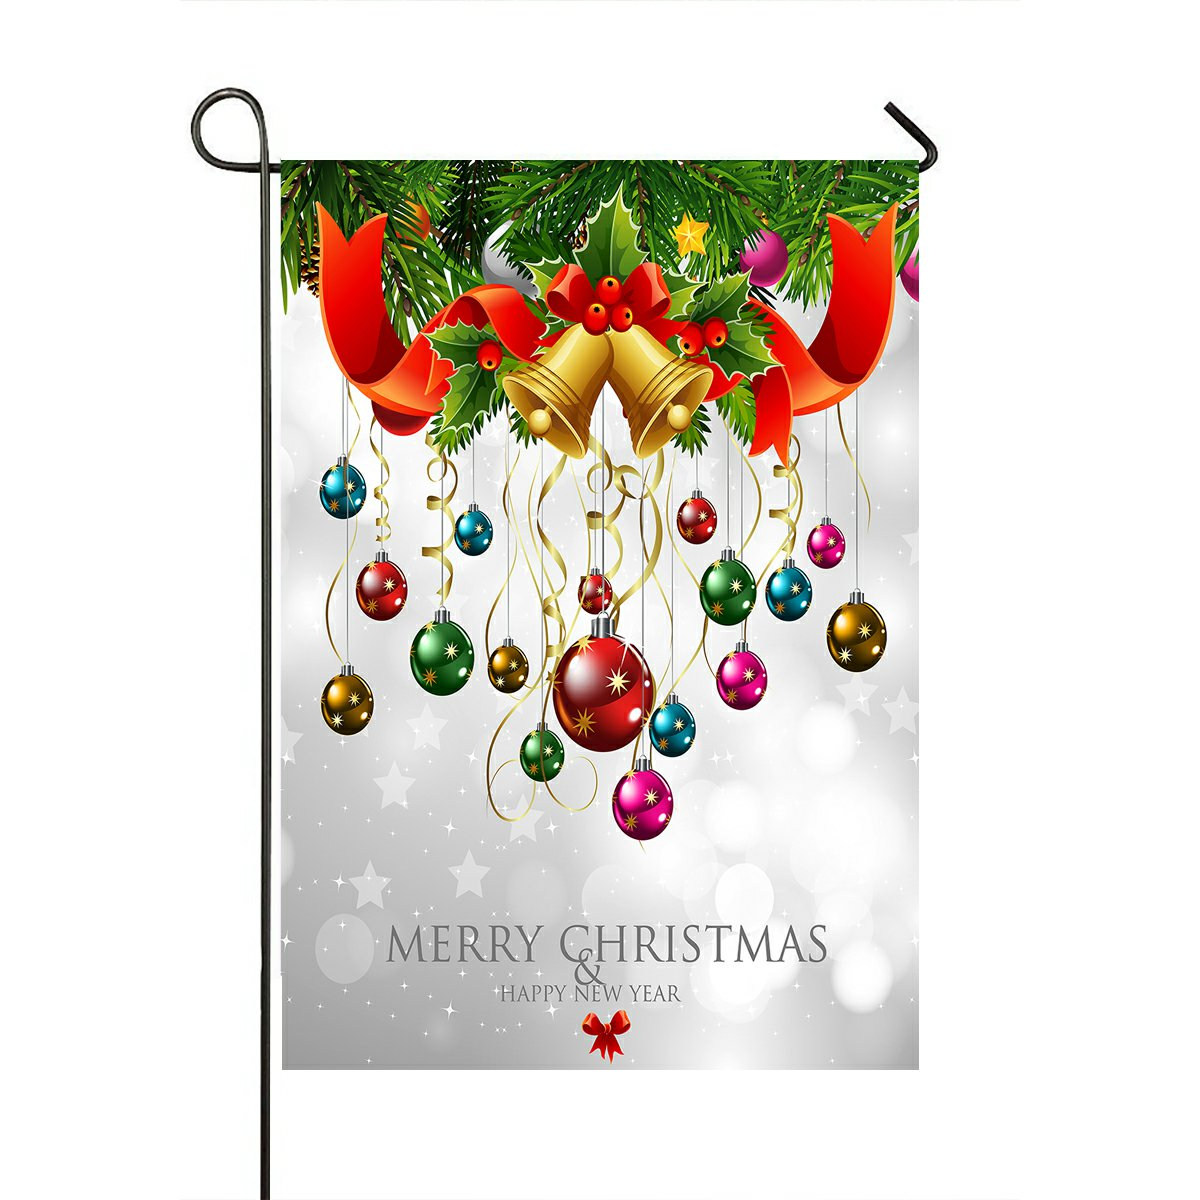 GCKG Xmas Merry Christmas Happy New Year Garden Flag Outdoor Flag ...